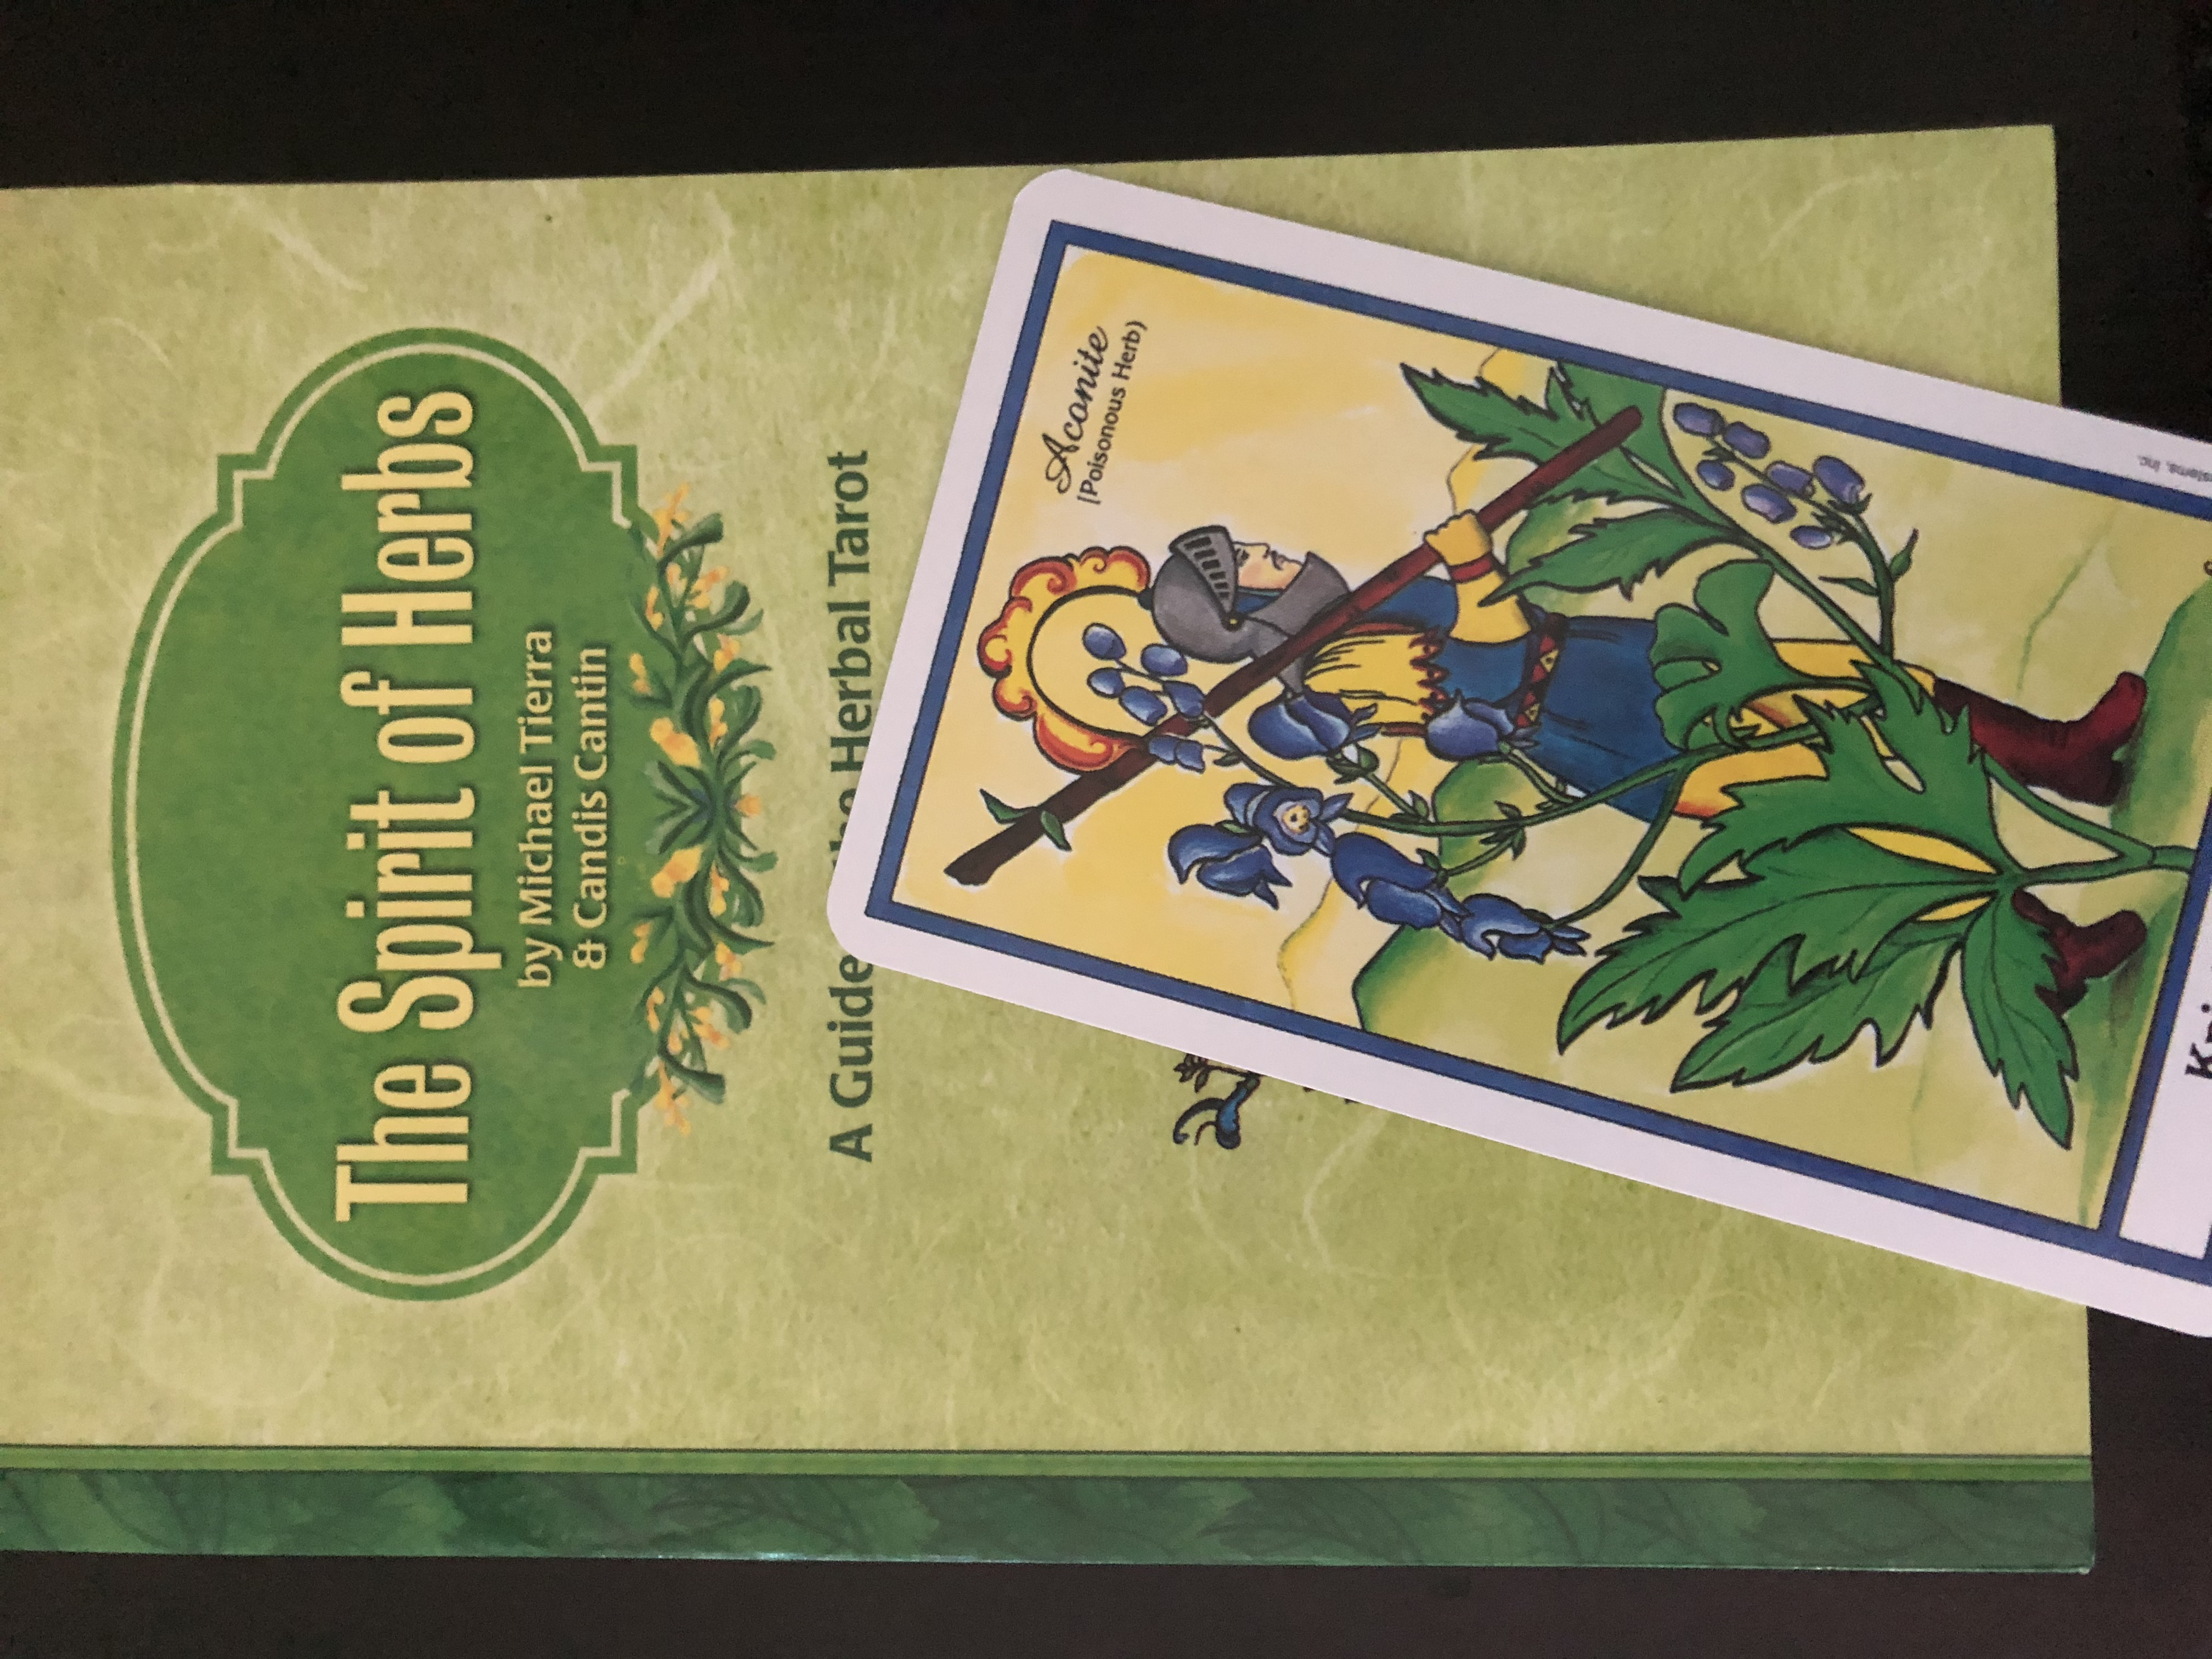 Herbal-tarot-book-by-tierra-and-cantin-with-knight-of-wands-card-with-monkshood-illustration